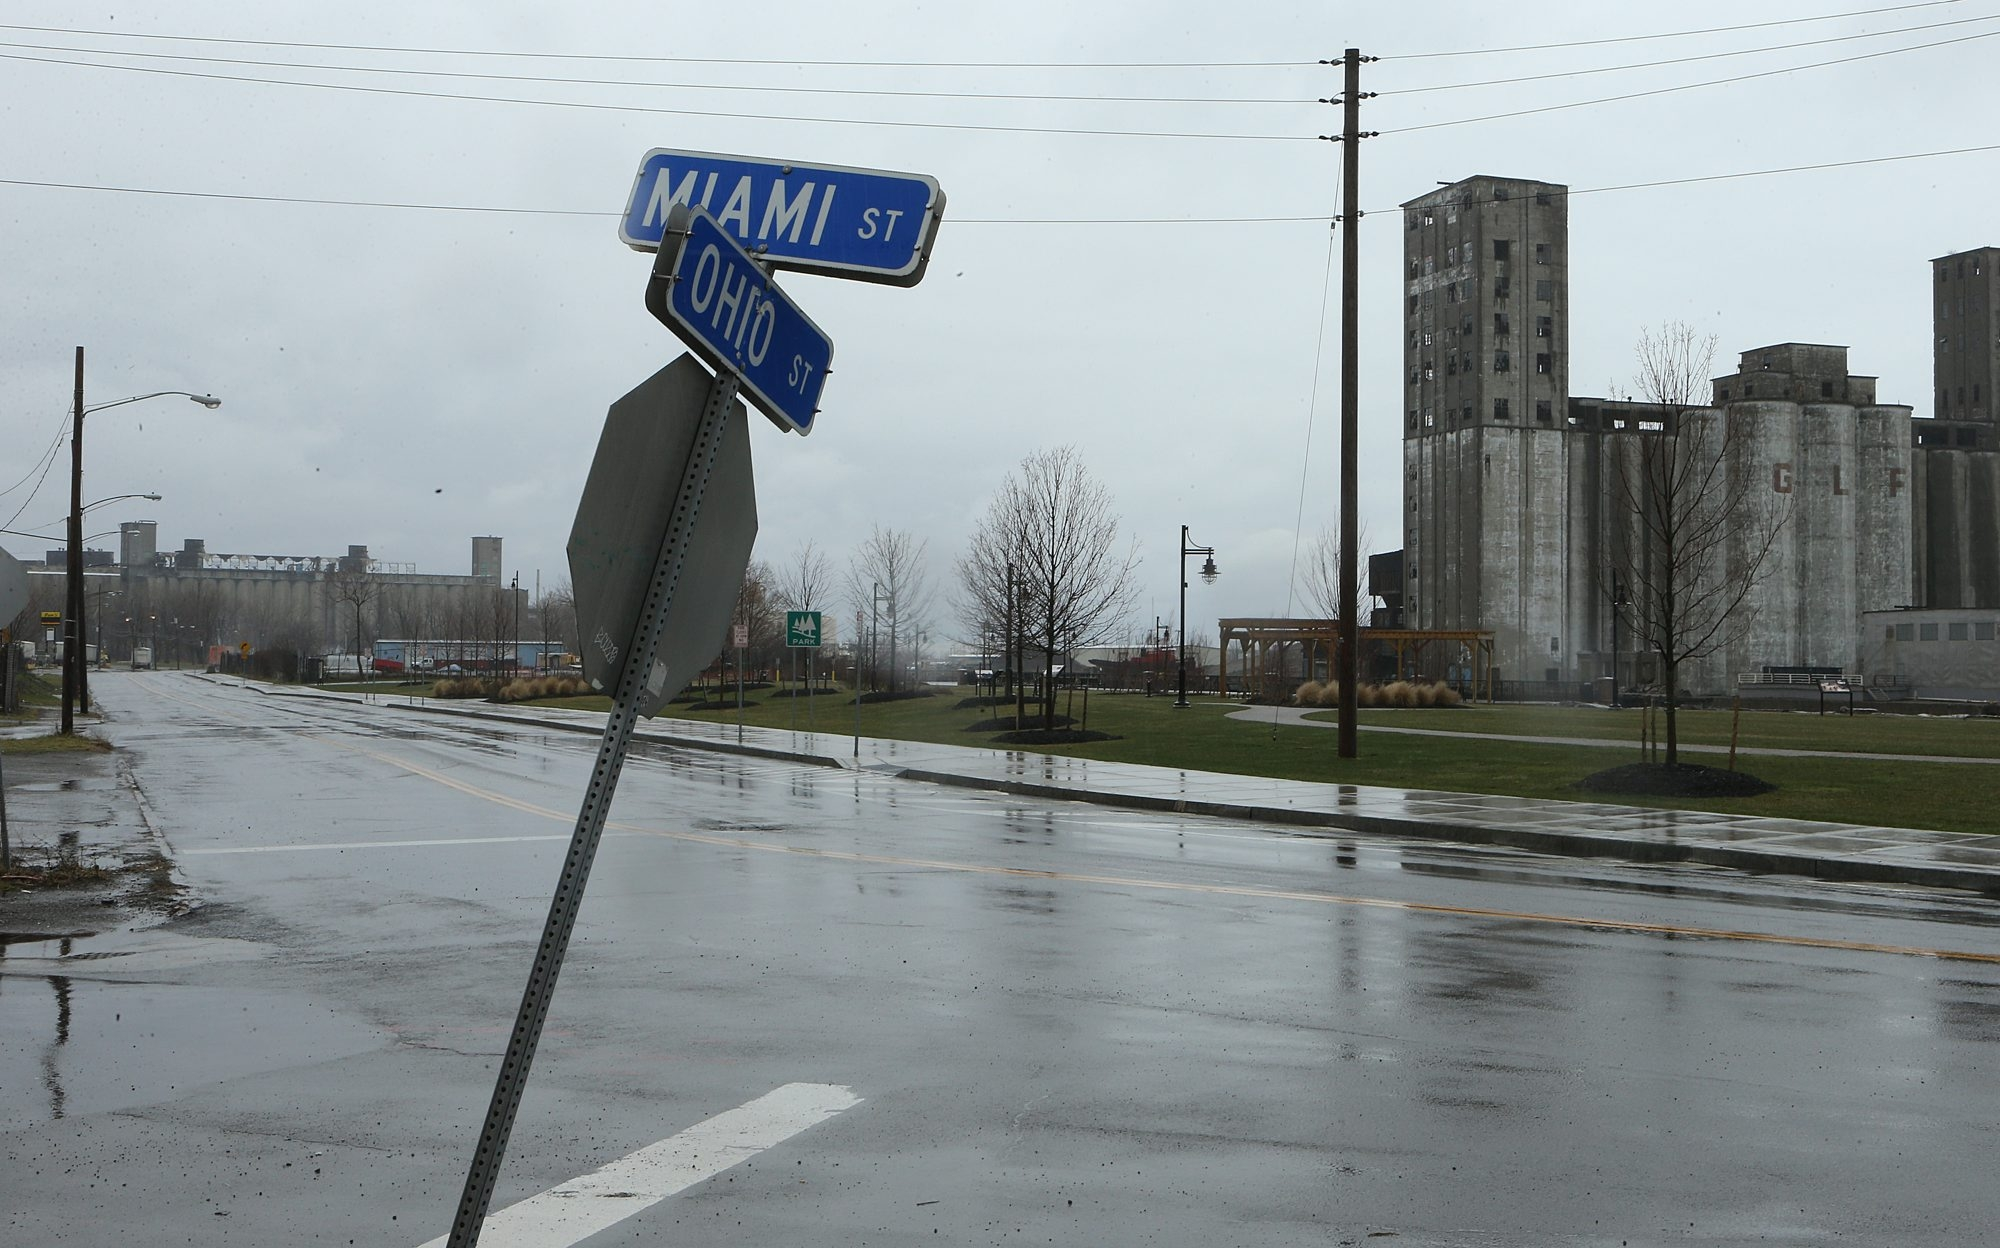 A view of Ohio Street in Buffalo, looking South from Miami St., Thursday, April, 11, 2013. The Erie Canal Harbor Development Corporation will spend 12.8 million to develop the street with parks and bike paths. (Charles Lewis/Buffalo News)